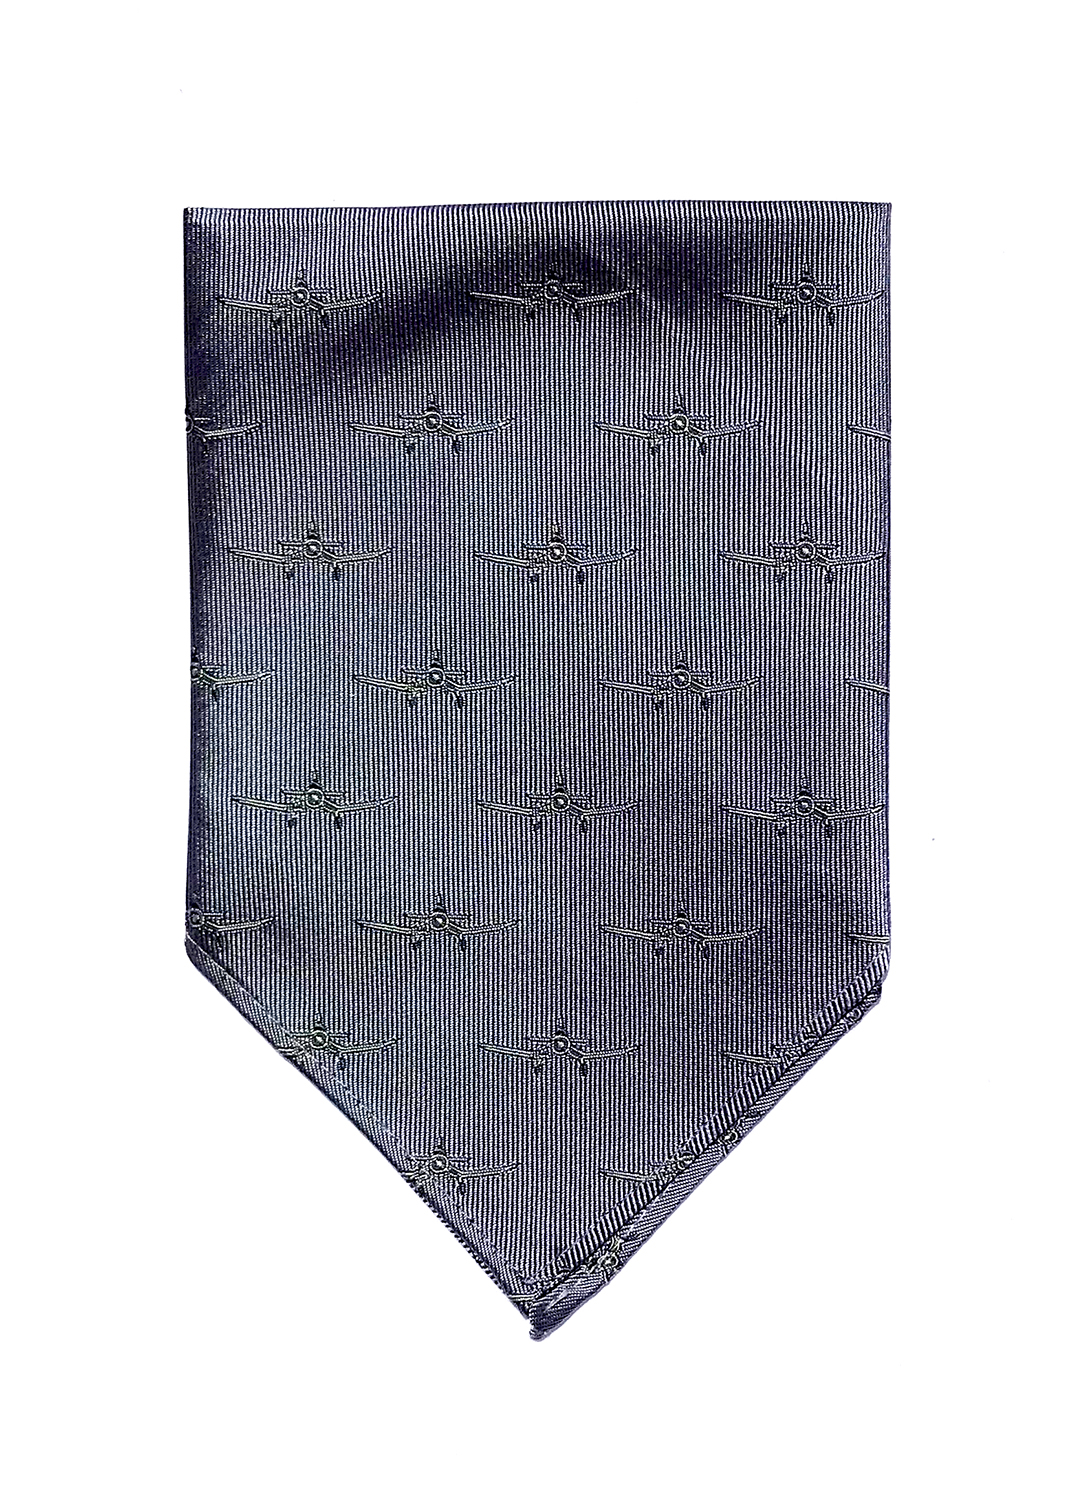 doppeldecker design aviation aircraft airplane pocket square corsair